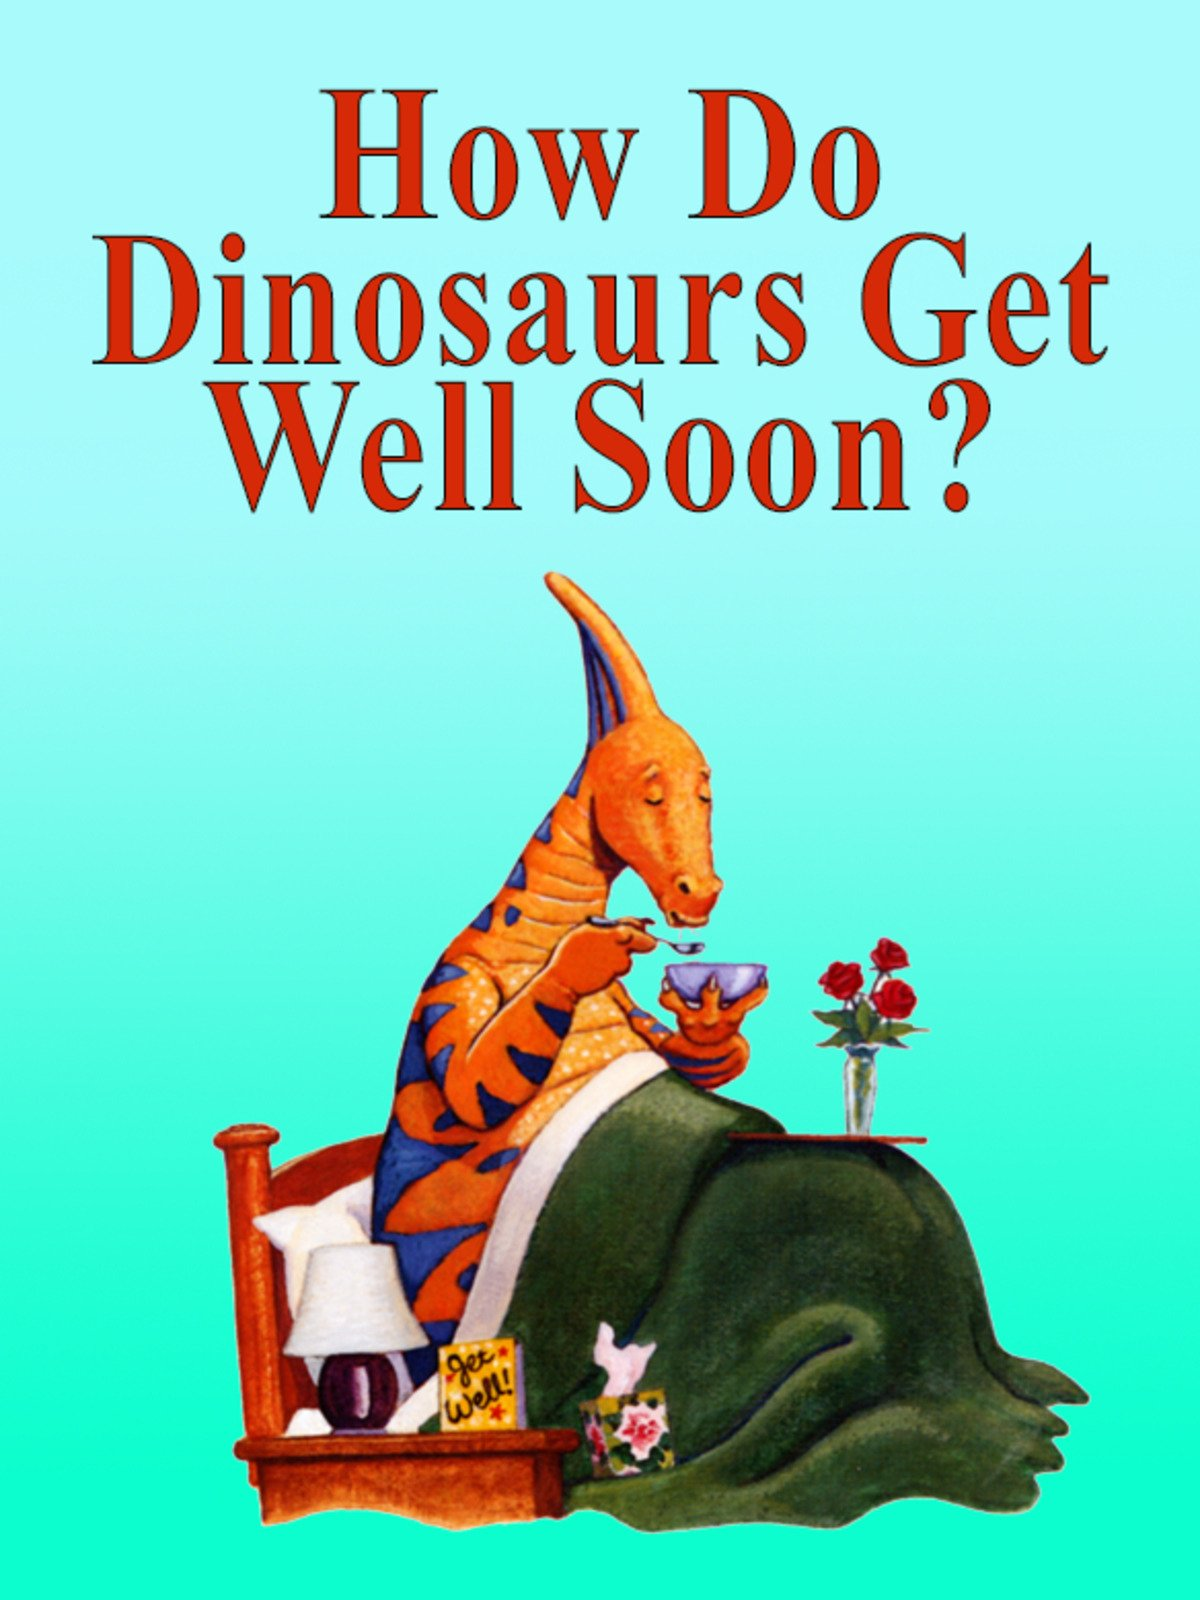 How Do Dinosaurs Get Well Soon? on Amazon Prime Instant Video UK